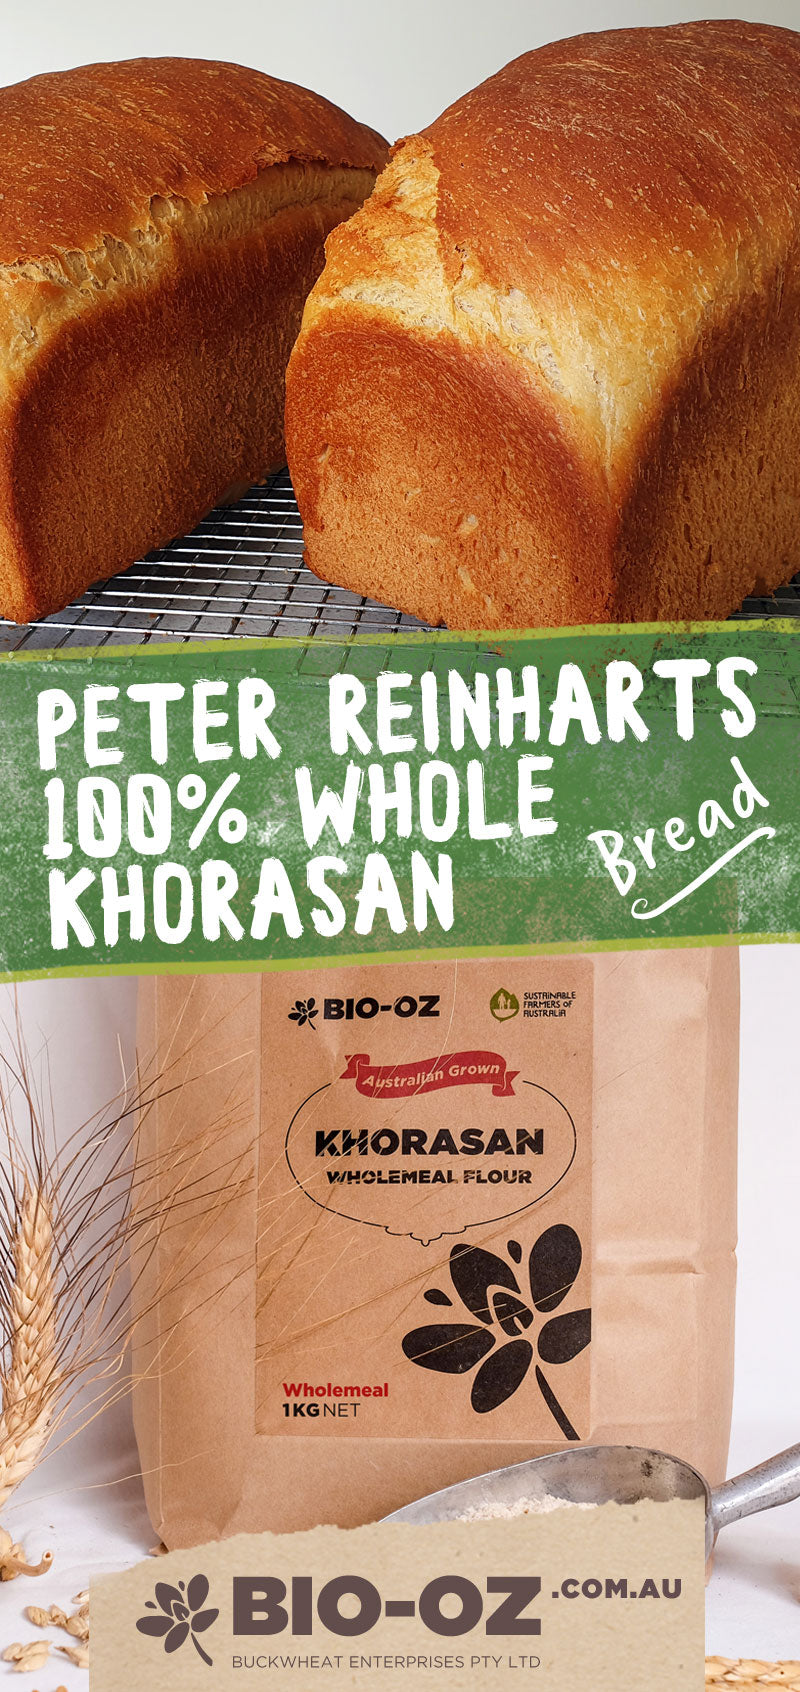 Peter Reinharts 100% Whole Khorasan Bread